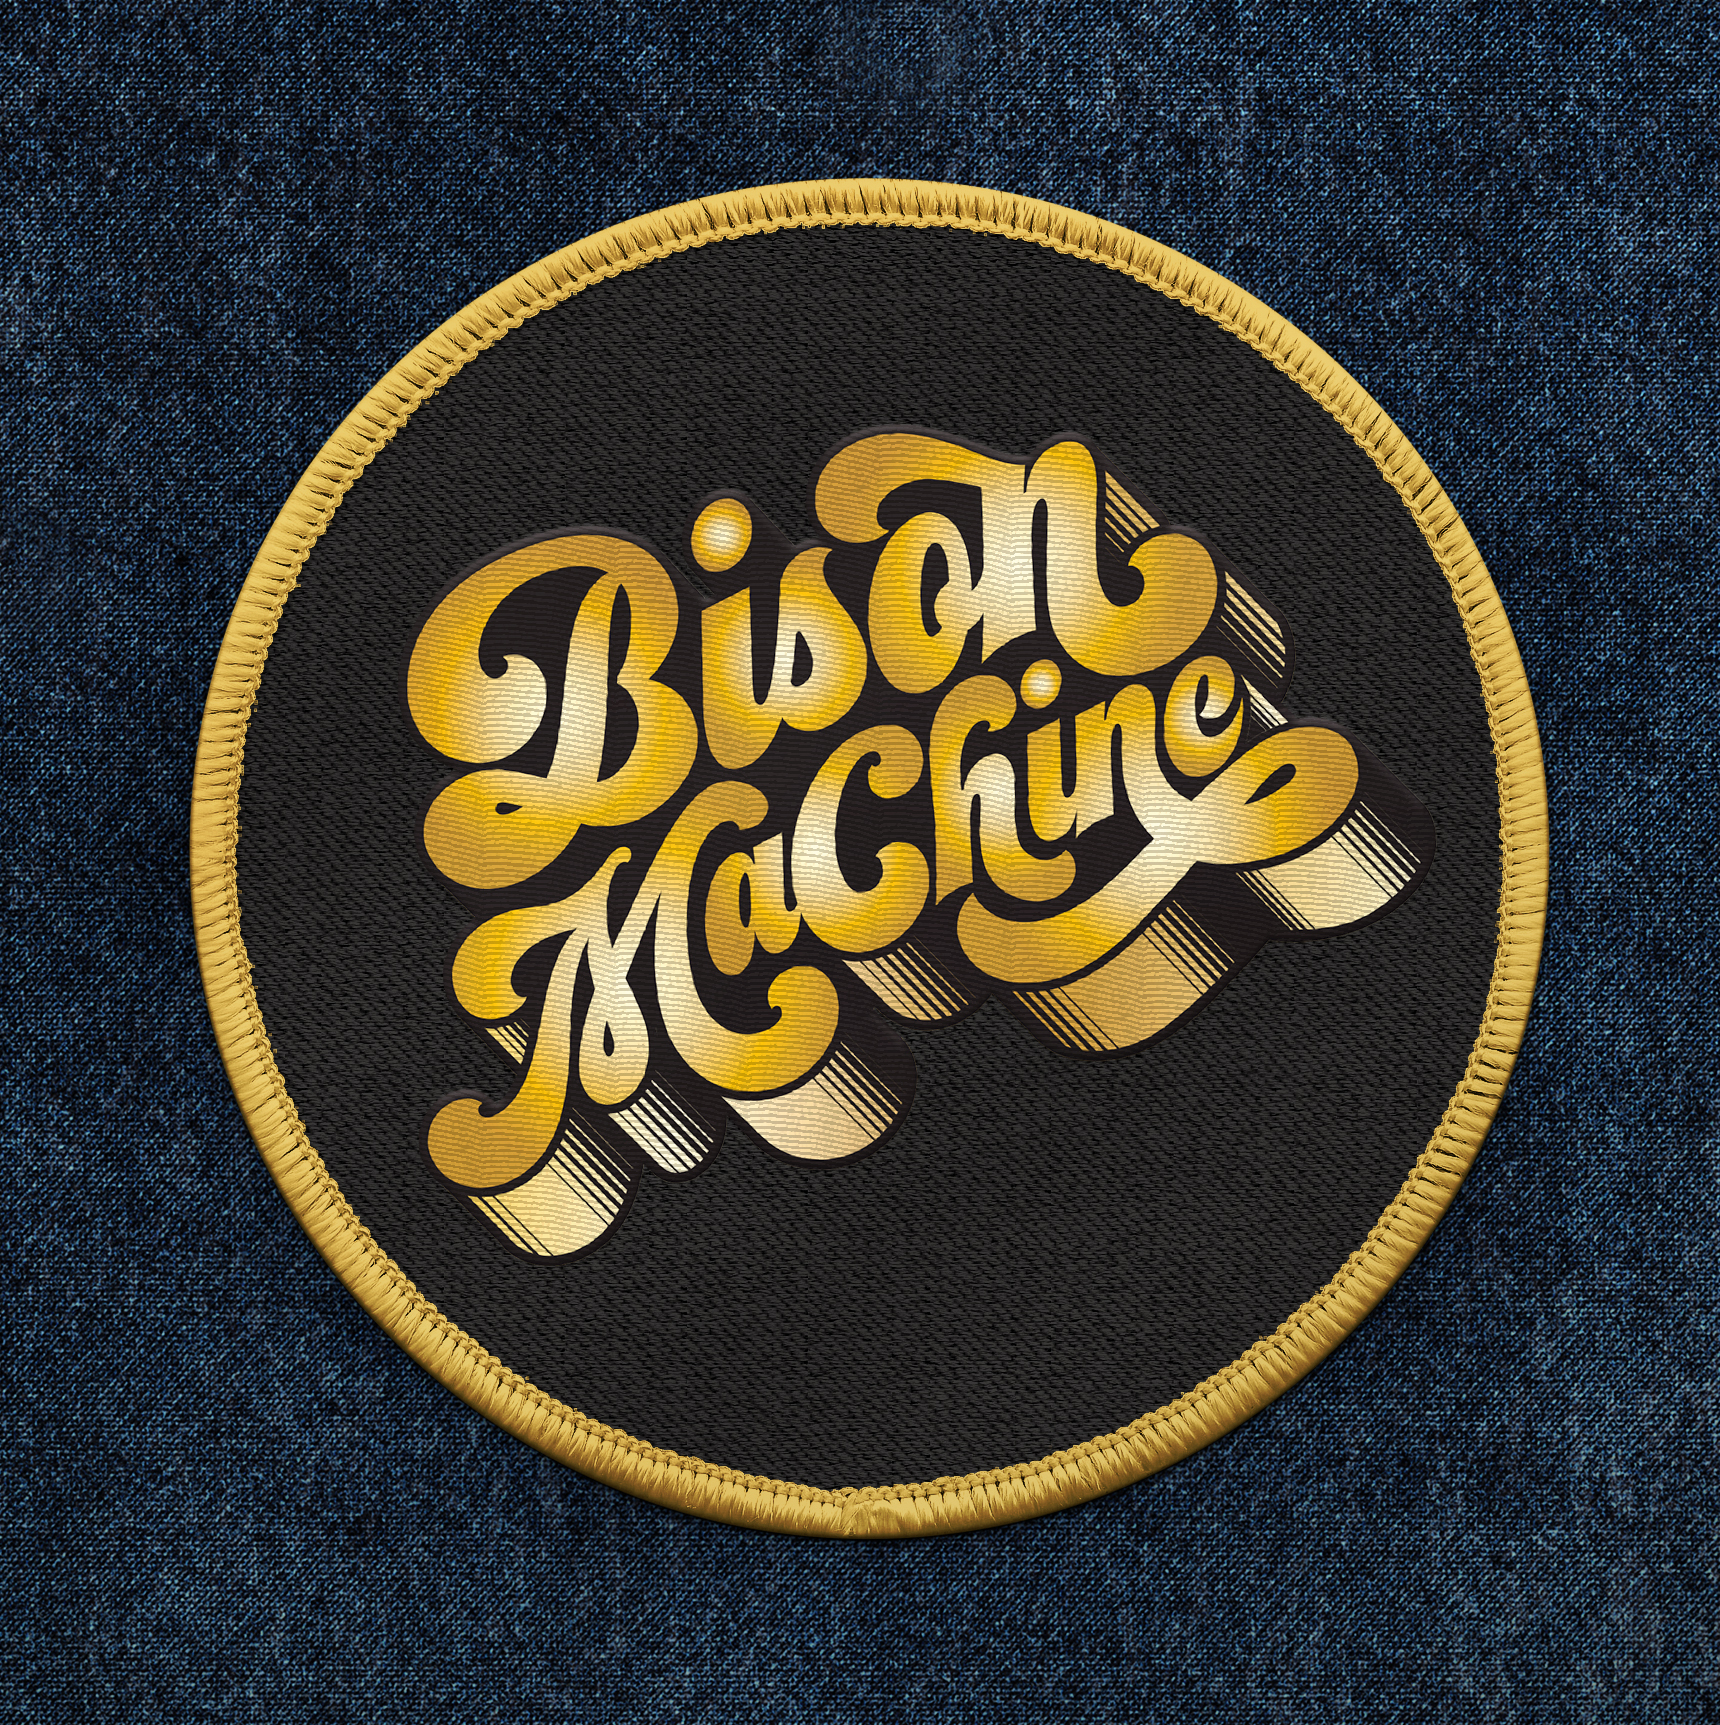 Bison Machine Patch - Gold.jpg